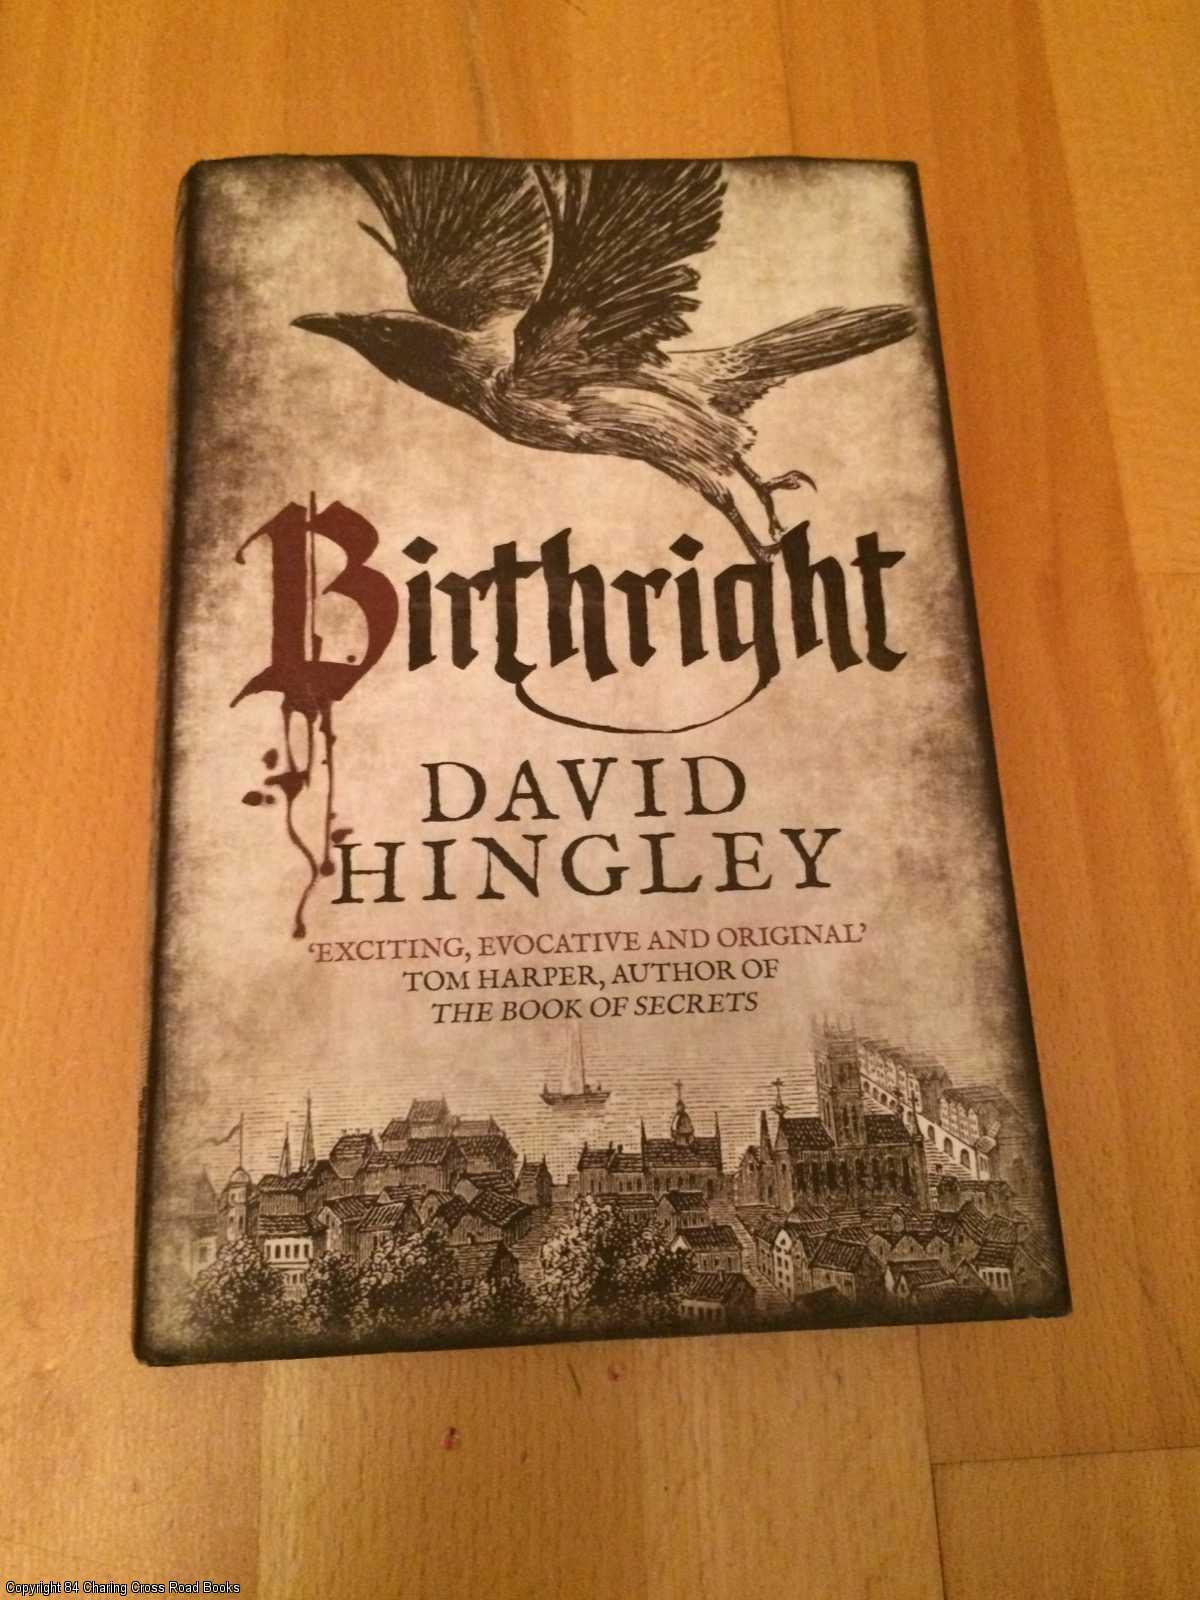 DAVID HINGLEY - Birthright